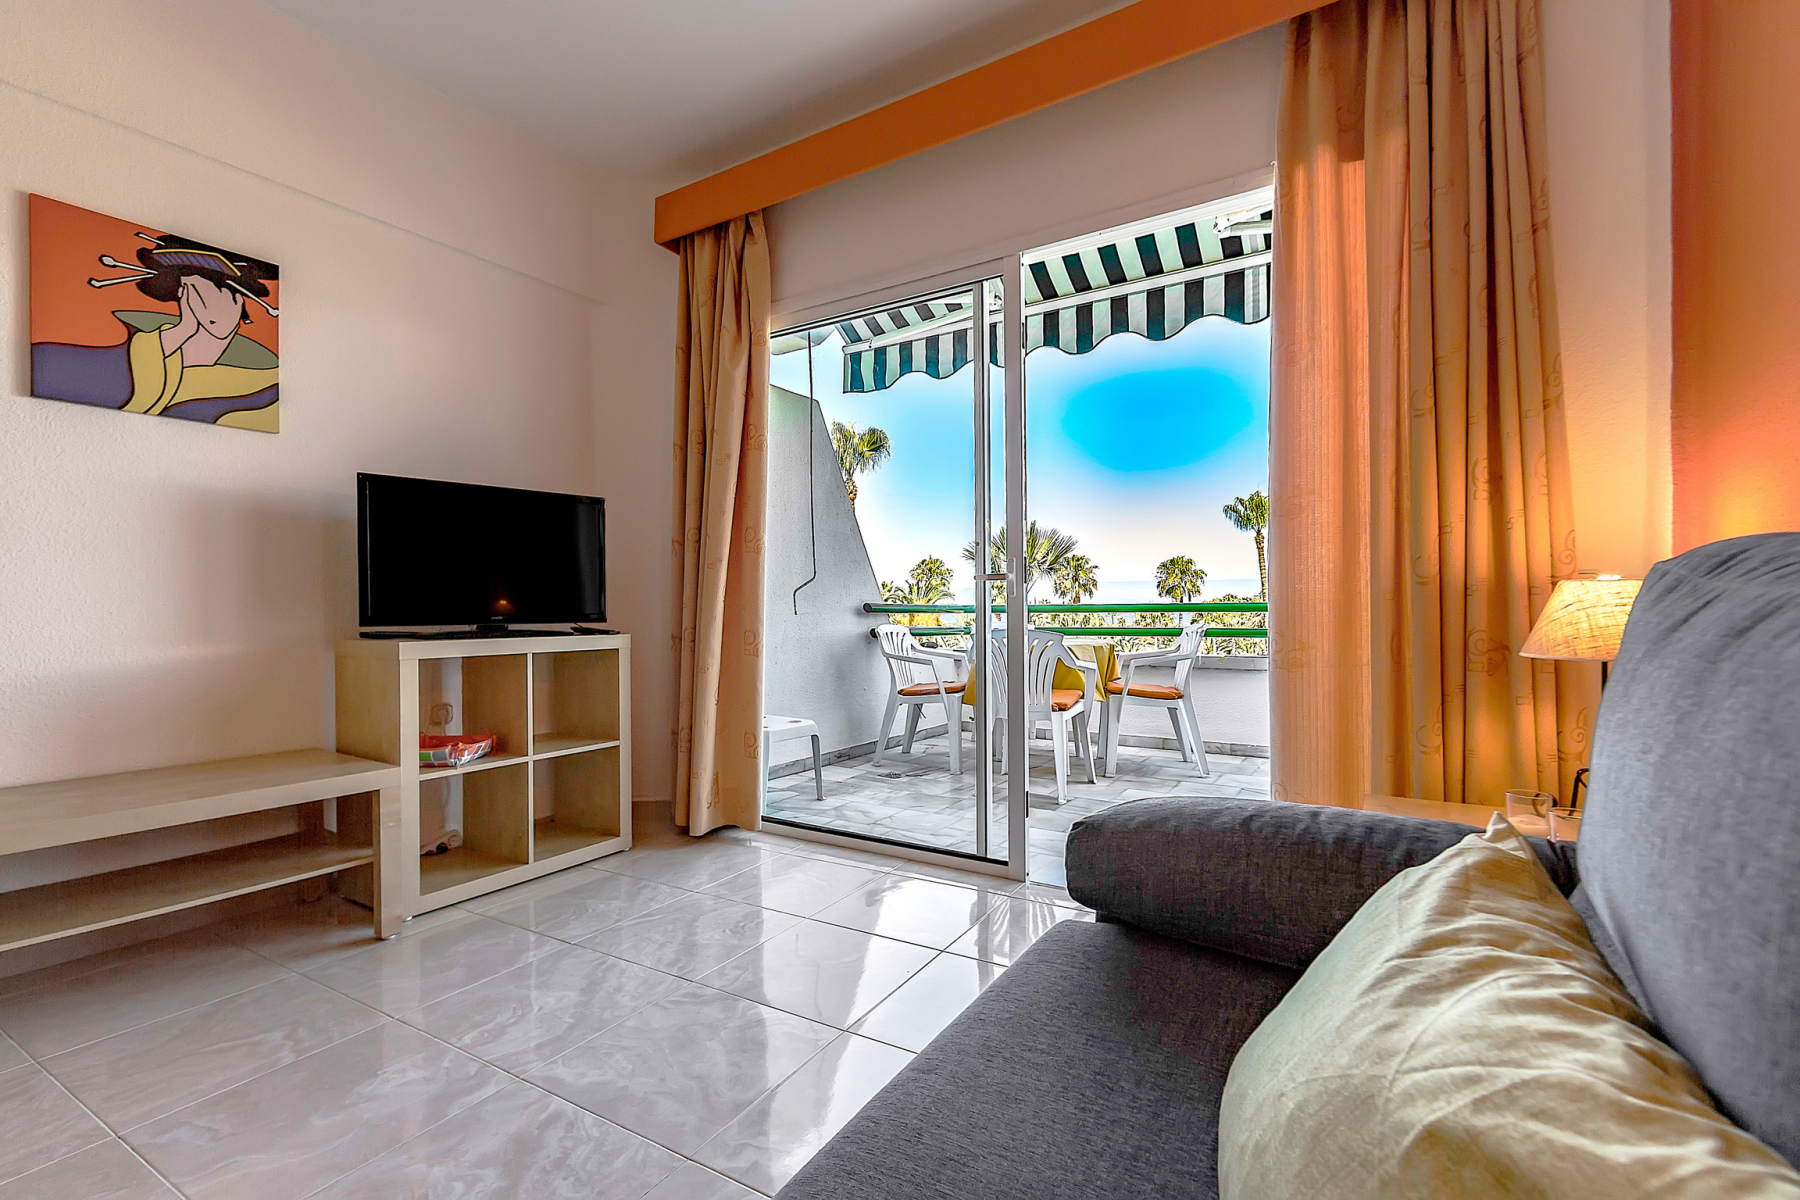 Properties for Sale in Tenerife, Canary Islands, Spain | SylkWayStar Real Estate. Lovely 1 Bedroom Apartment - Altamira. Image-25826